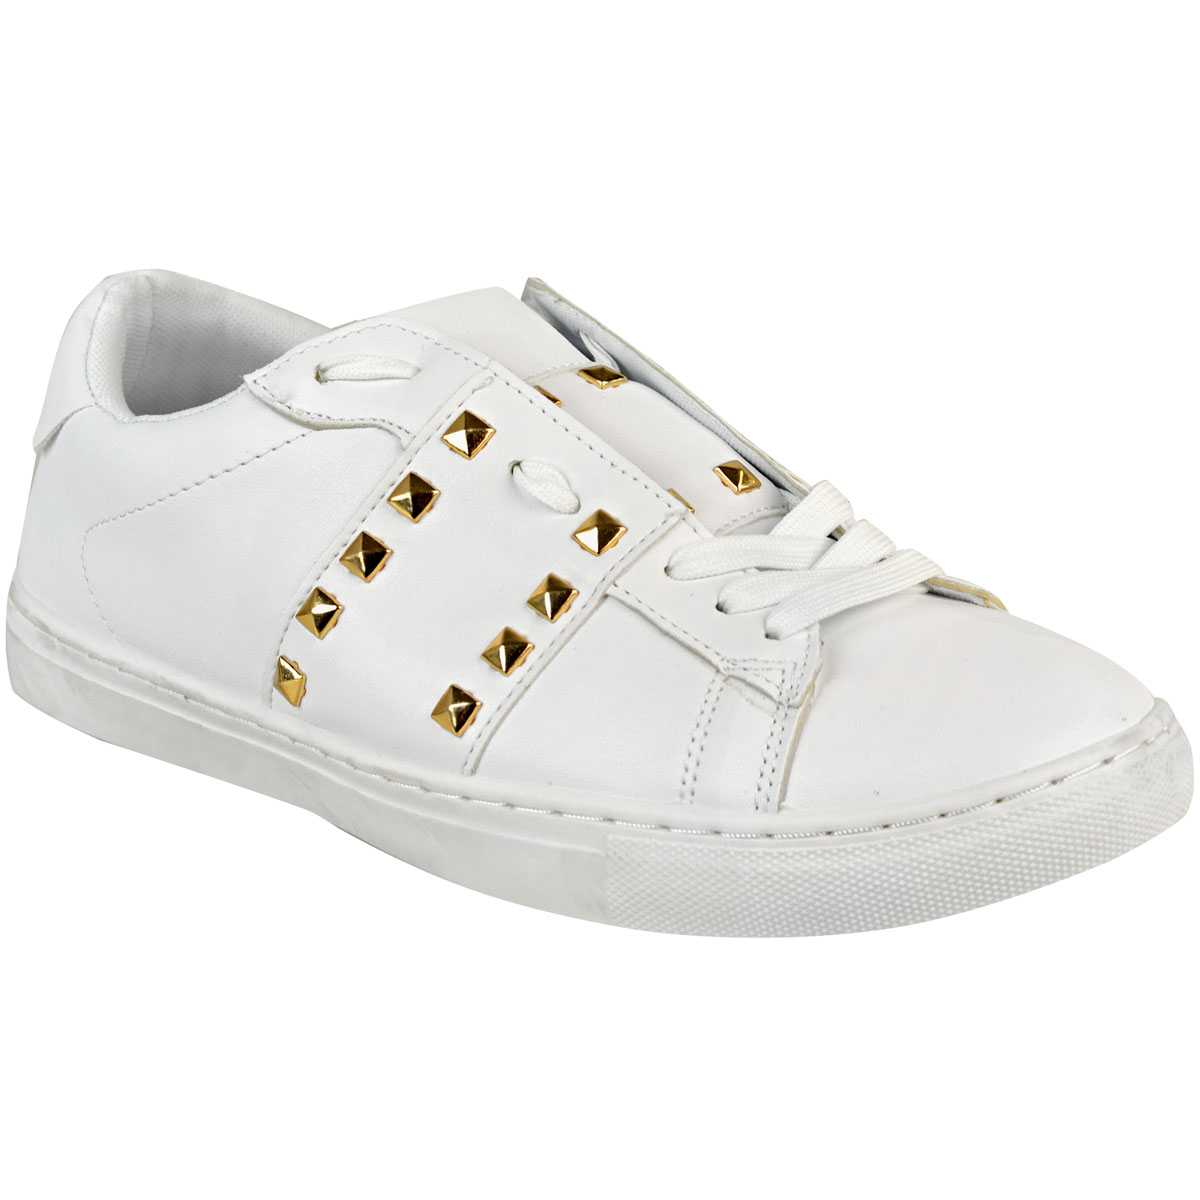 WOMENS SHOES LADIES TRAINERS SNEAKERS PUMPS SKATER FLAT STUDDED LACE UP SIZE NEW